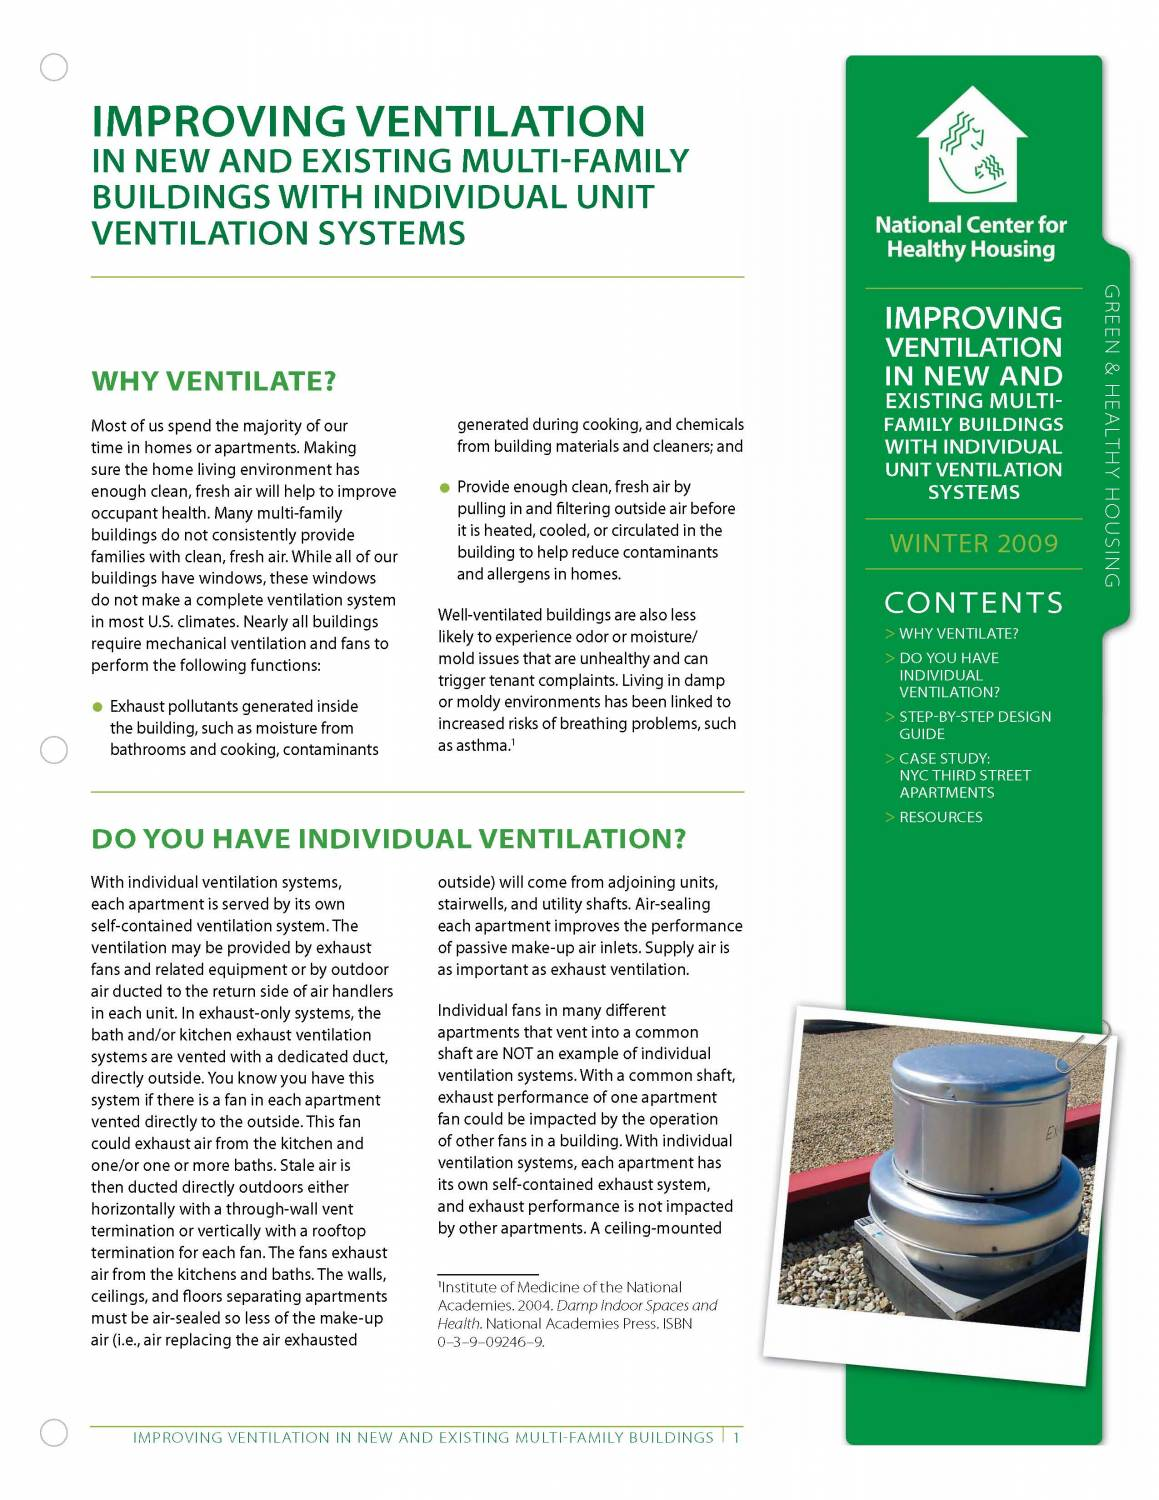 Fact Sheet: Improving Ventilation in New and Existing Multi-Family Buildings with Individual Unit Ventilation Systems